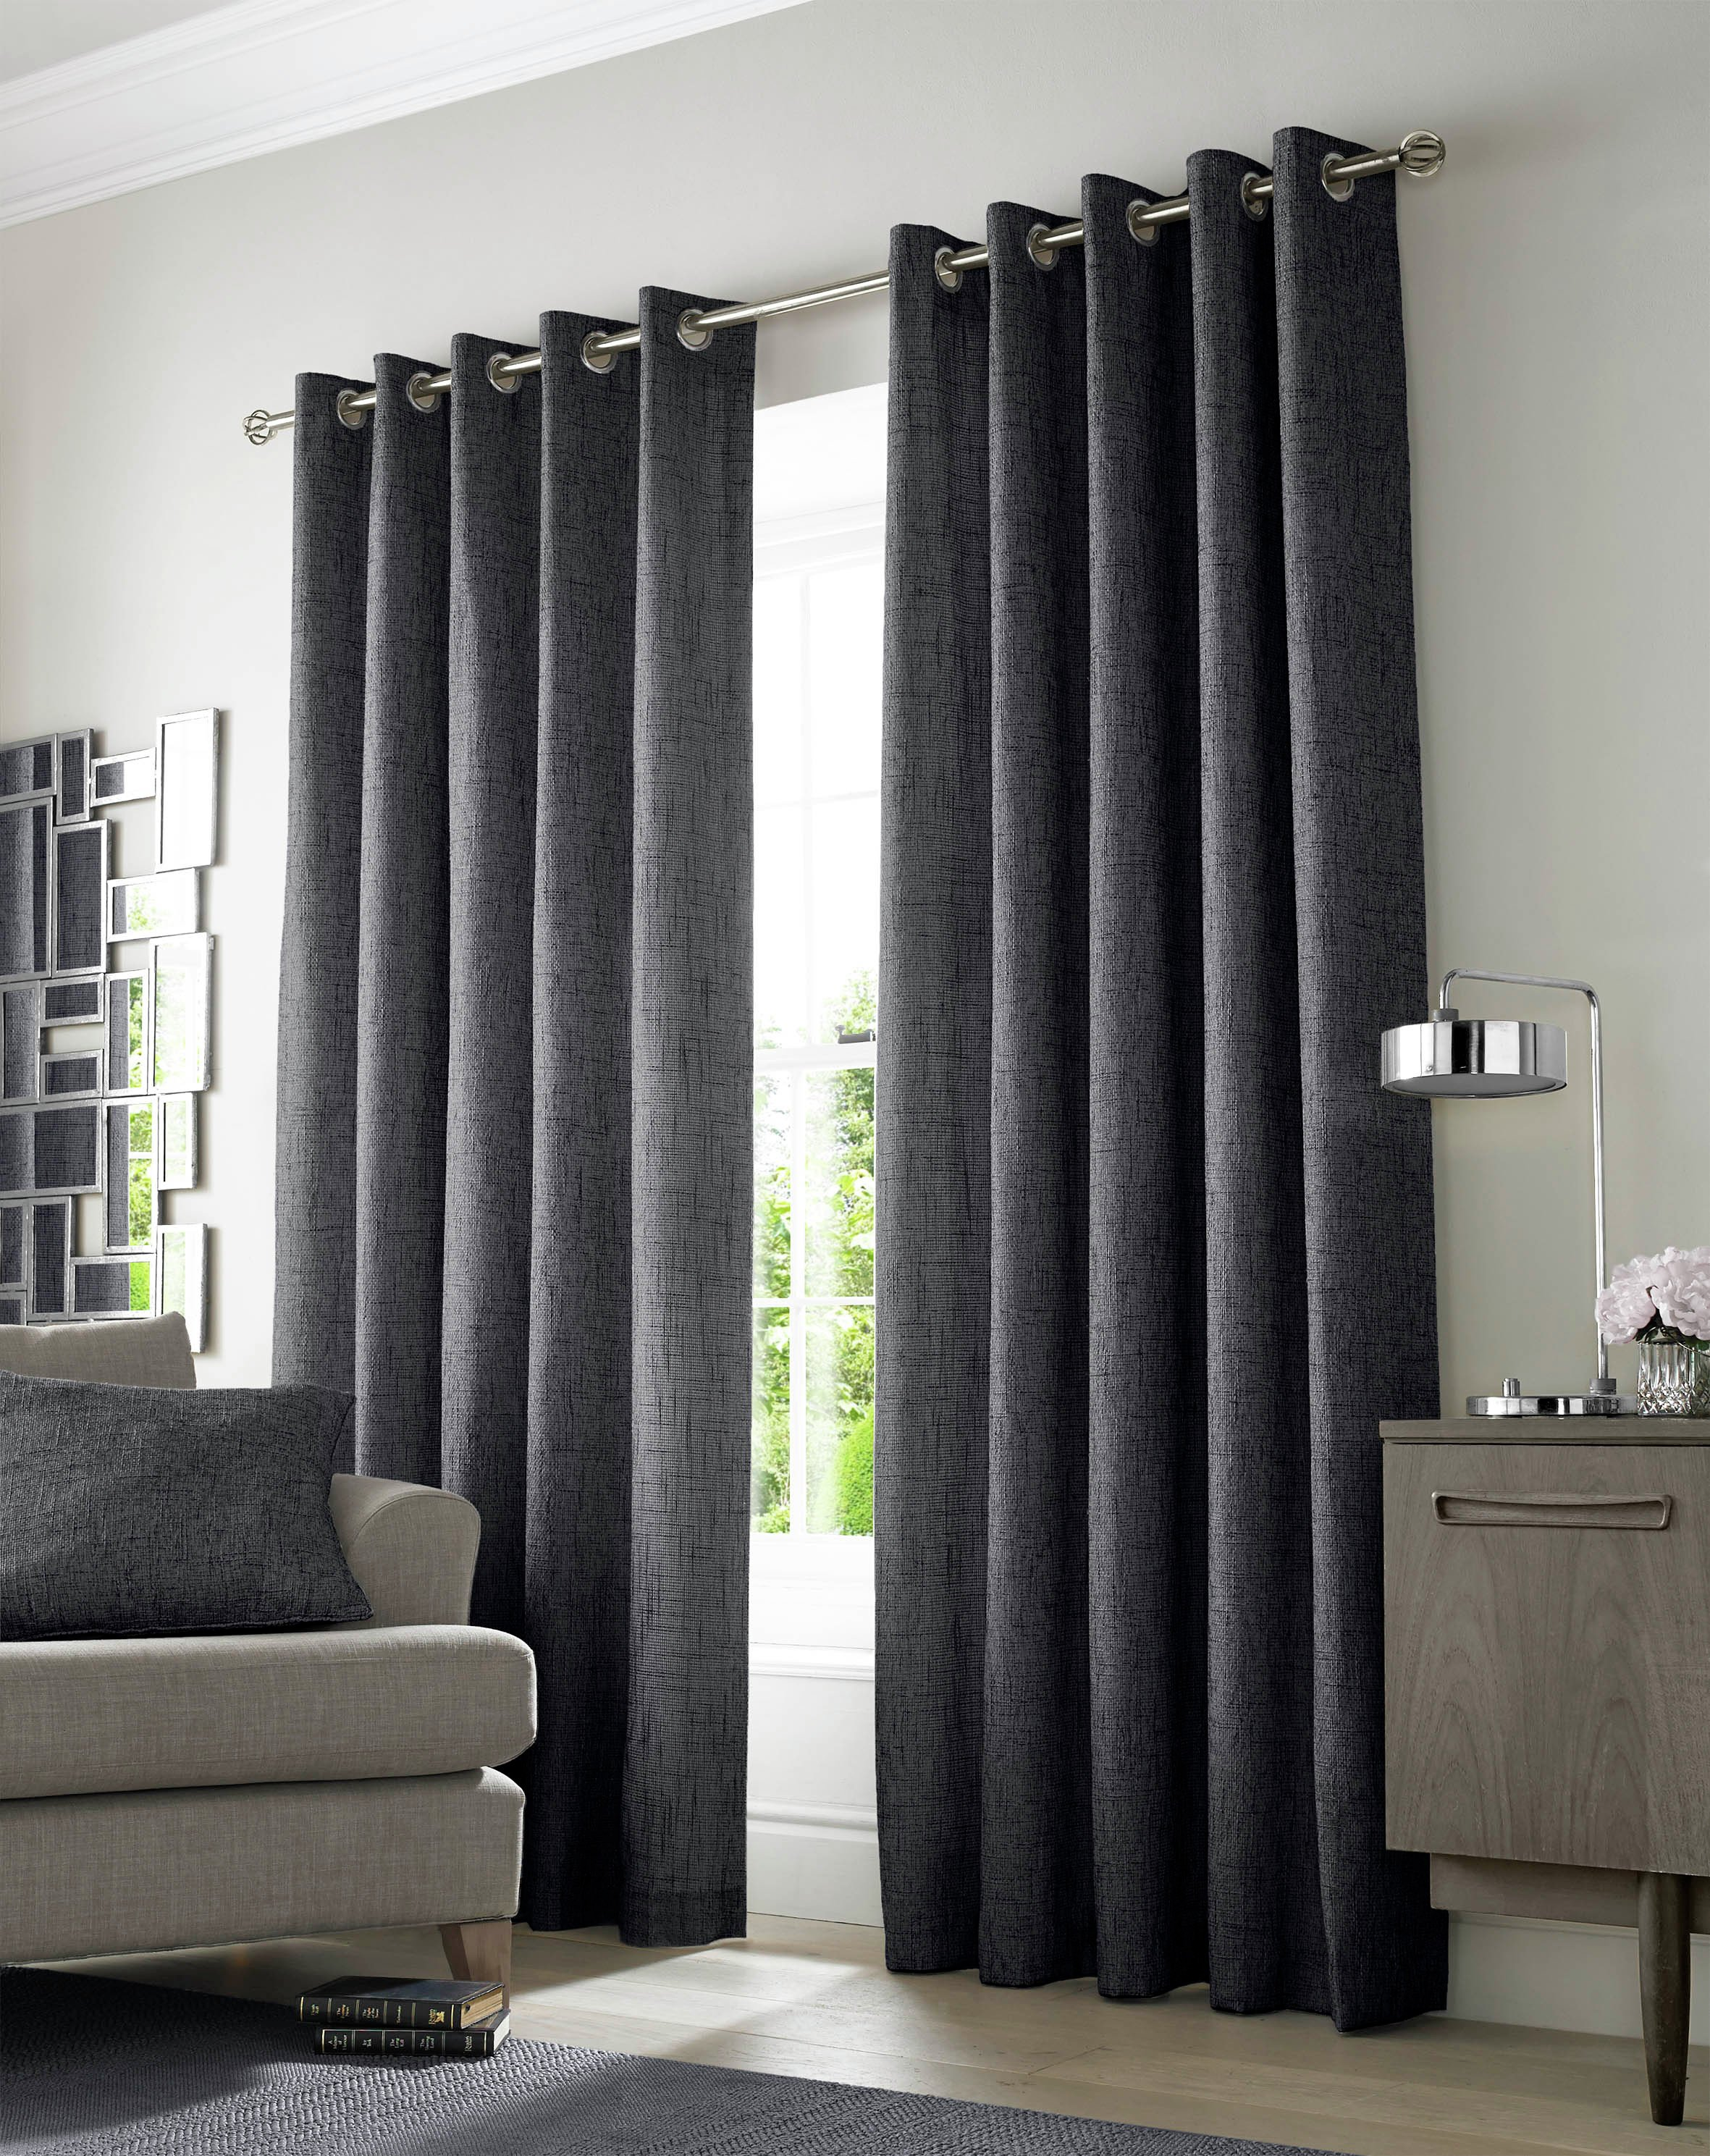 Academy Eyelet Curtains - 229x183cm - Charcoal.